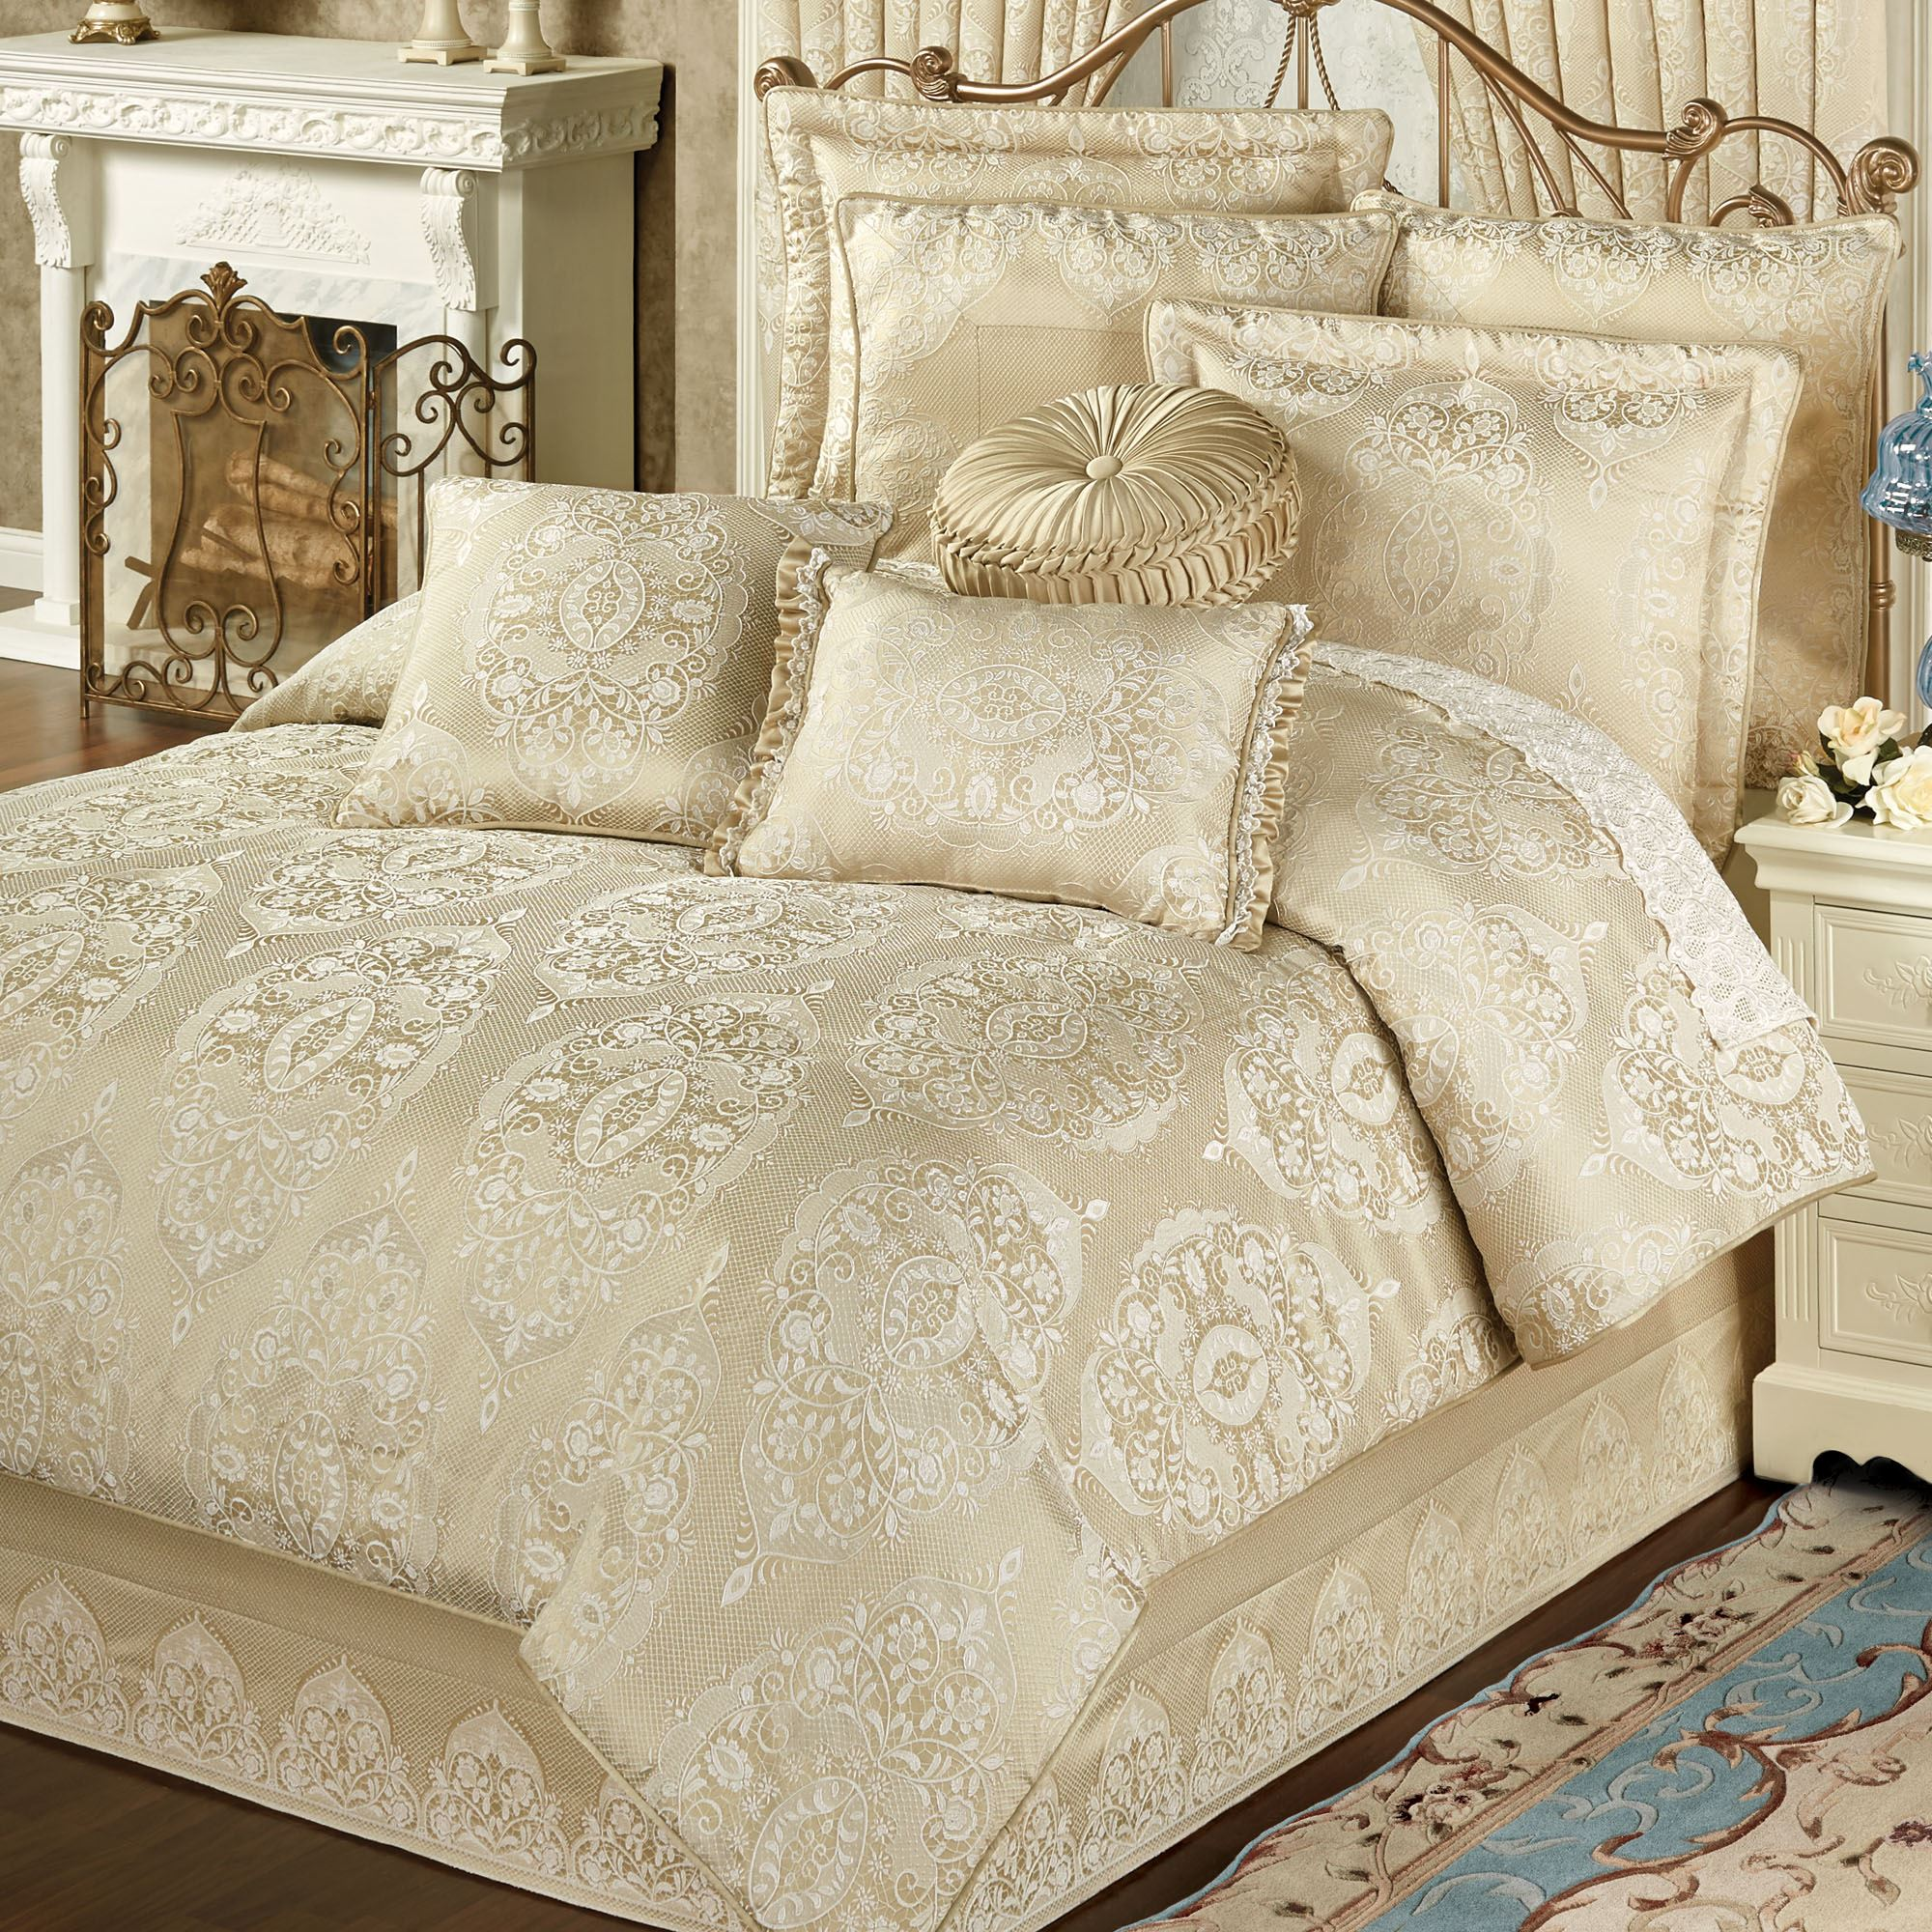 of and unique bedding set nightlamps paisley pillows sidetable colors comrforter for light bedroom gorgeous elegant mesmerizing comforter with